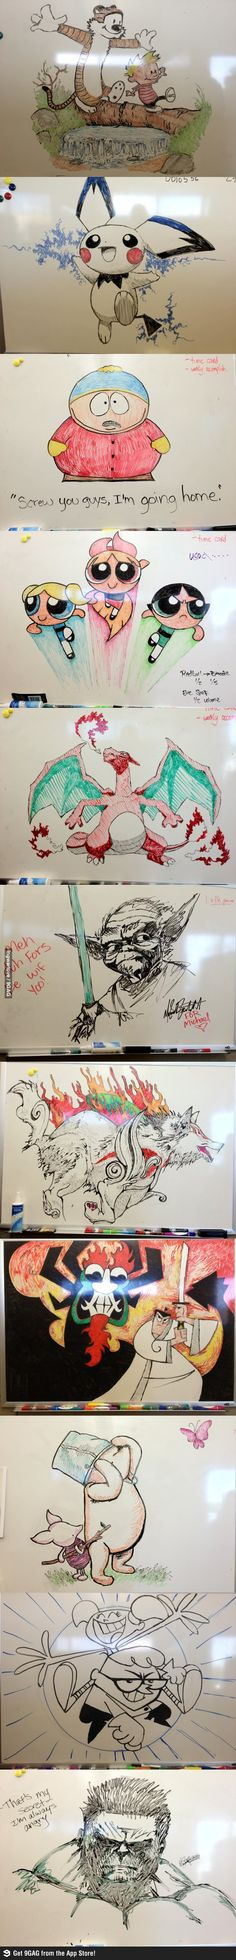 Whiteboard videos of and drawings on pinterest for Cute whiteboard drawings